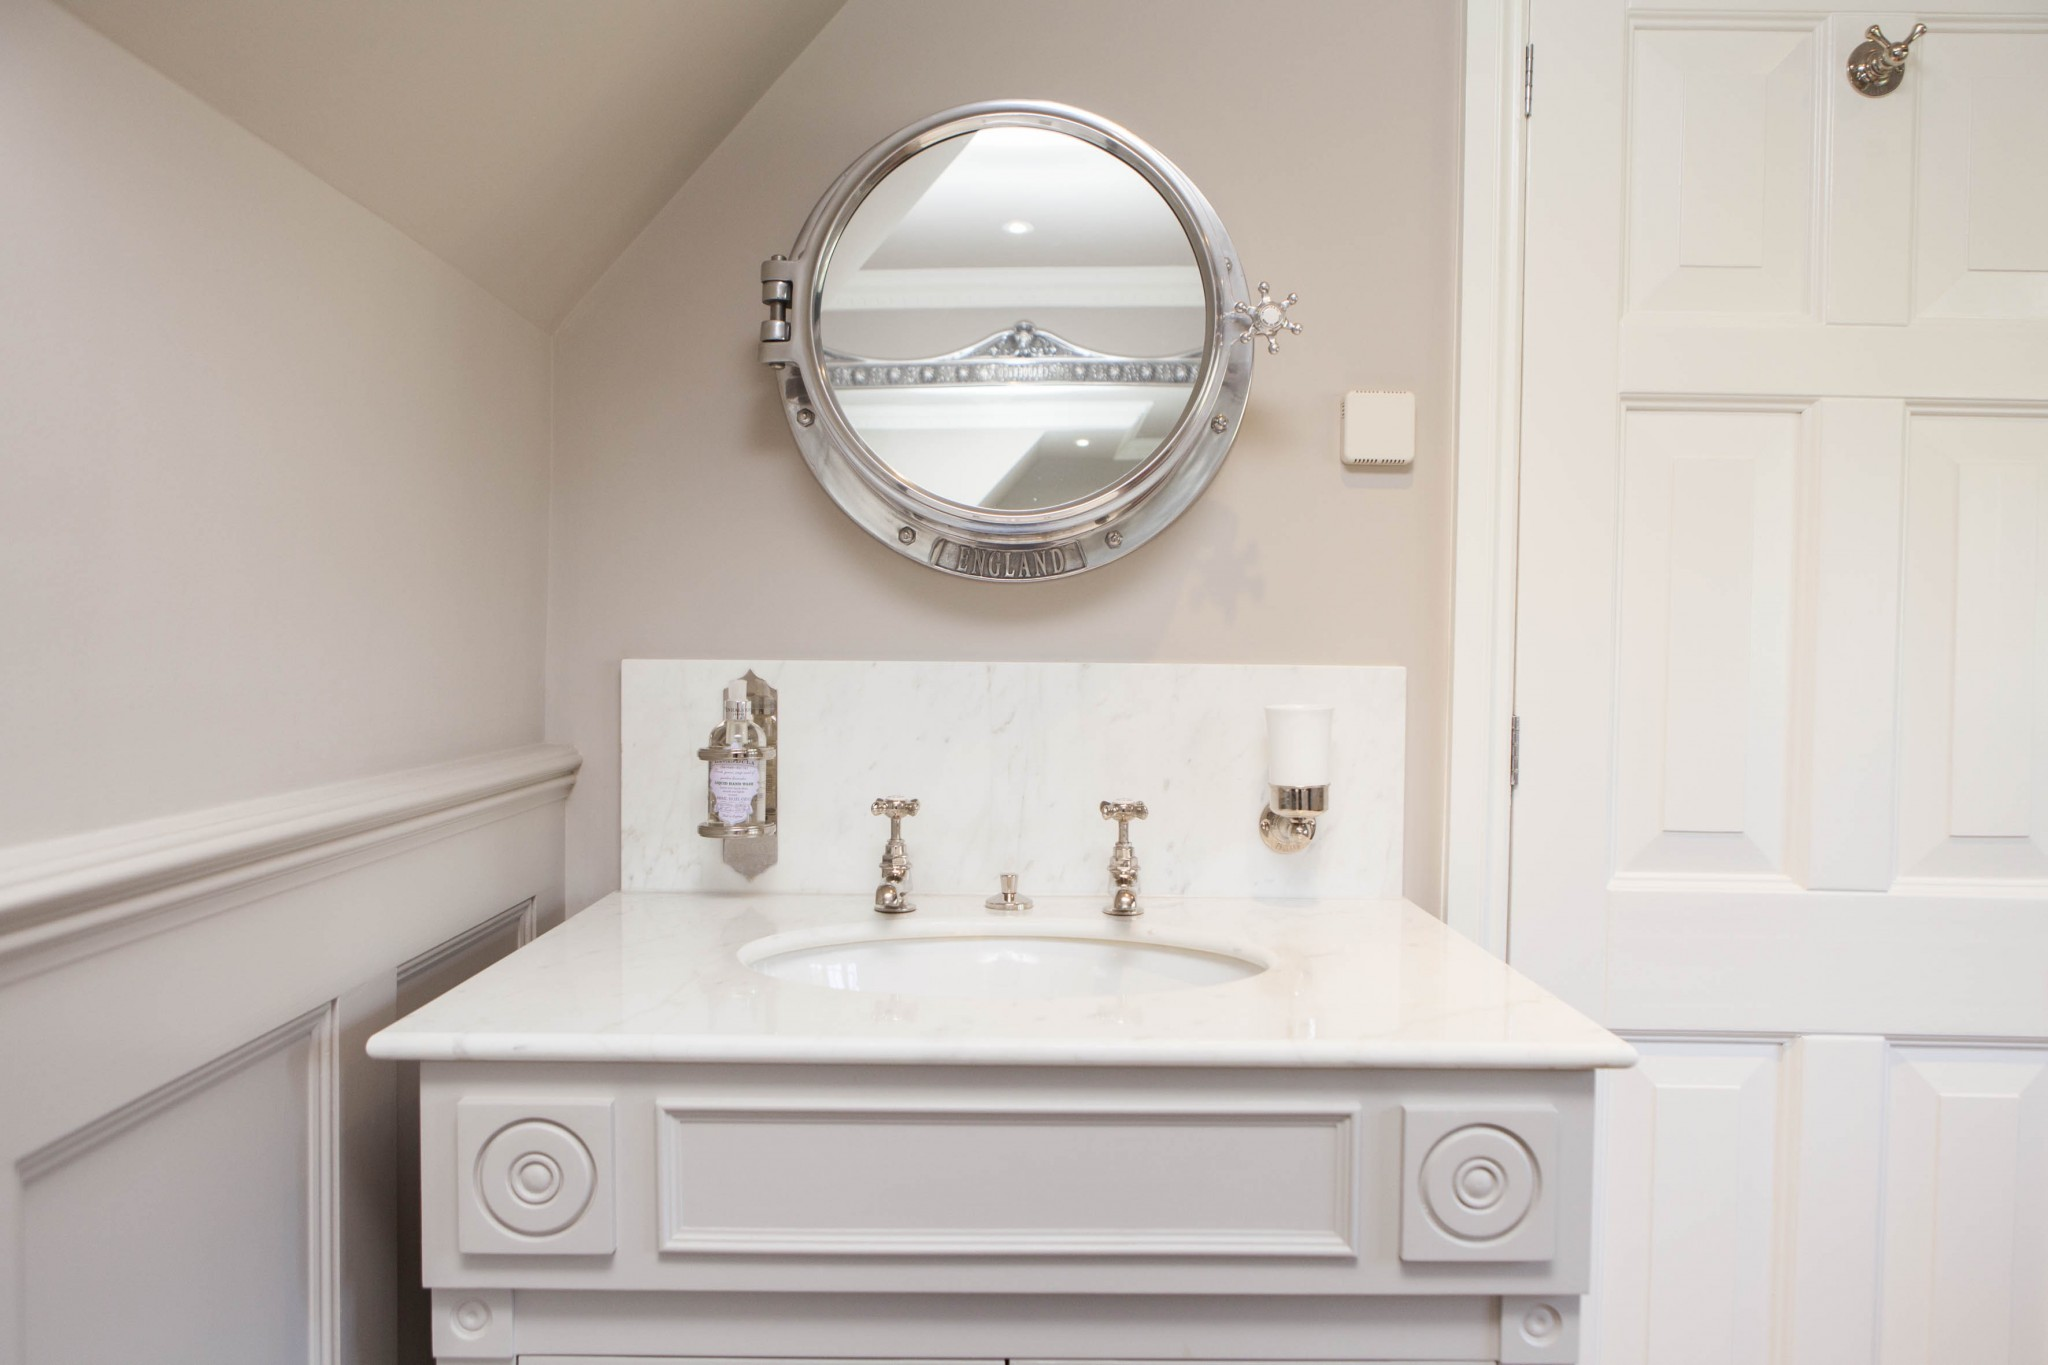 Chadder Windsor Basin cabinet with Chadder Porthole Mirror cabinet above with nickel fittings.